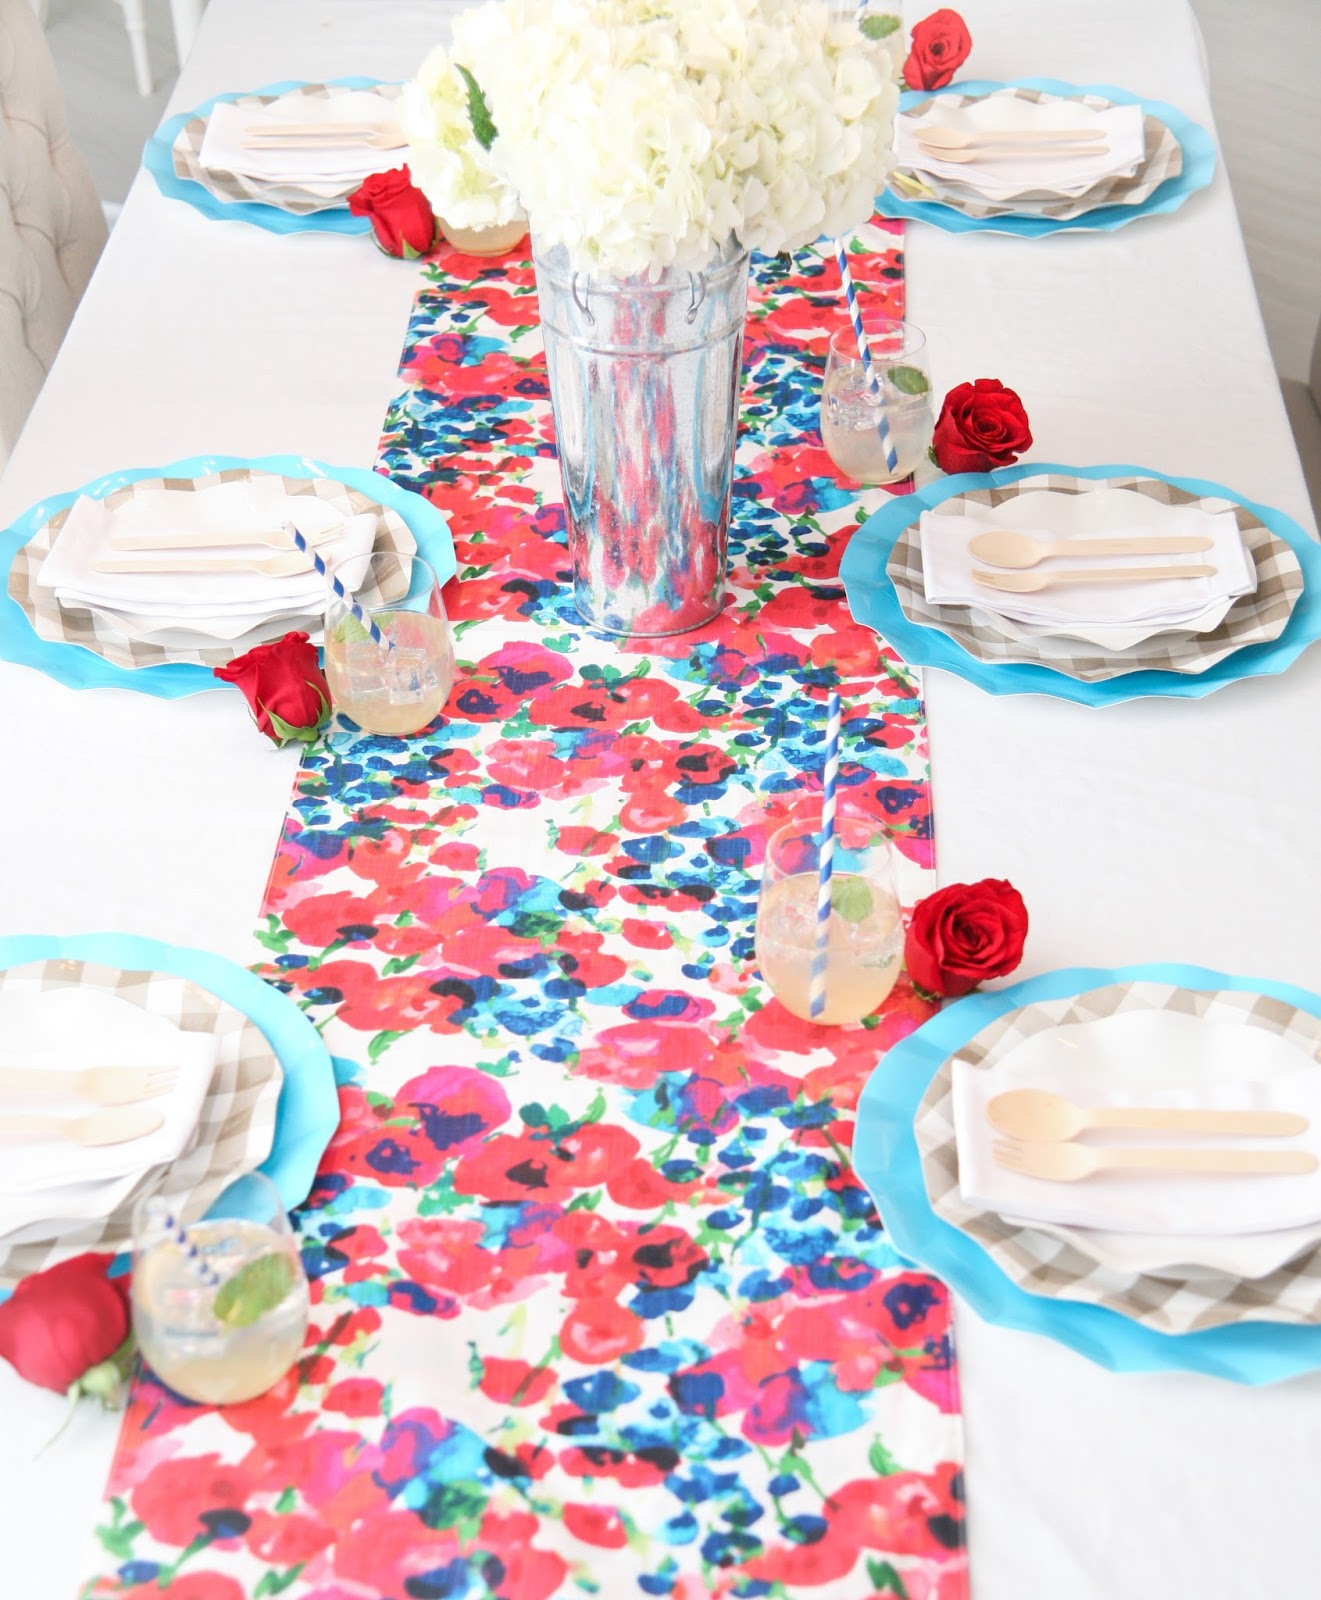 Kentucky Derby Table Decorations by popular South Florida party blogger Celebration Stylist